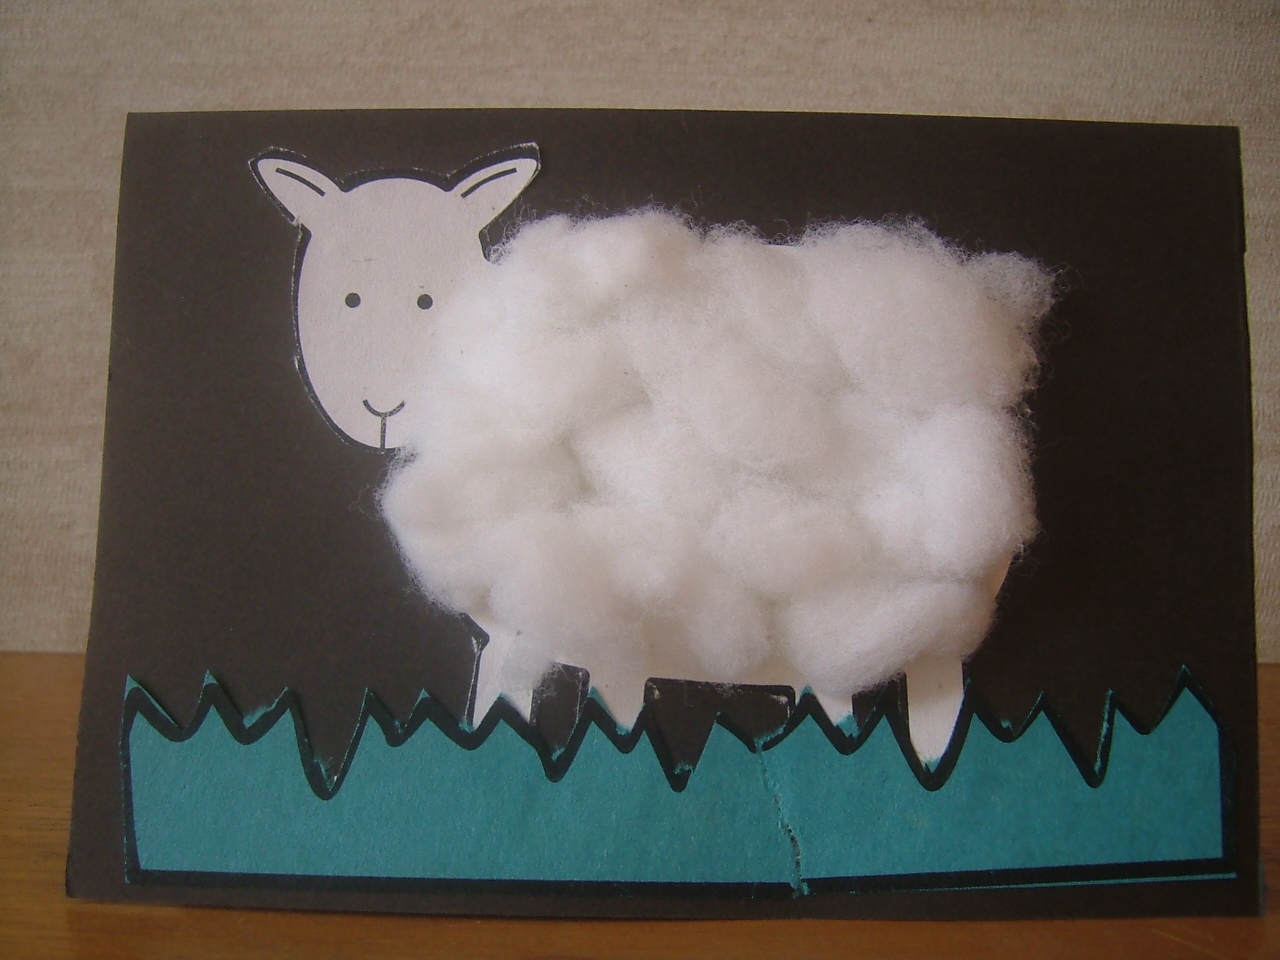 Preschool Crafts for Kids*: Easy Spring Lamb, Sheep Card Craft For Kids